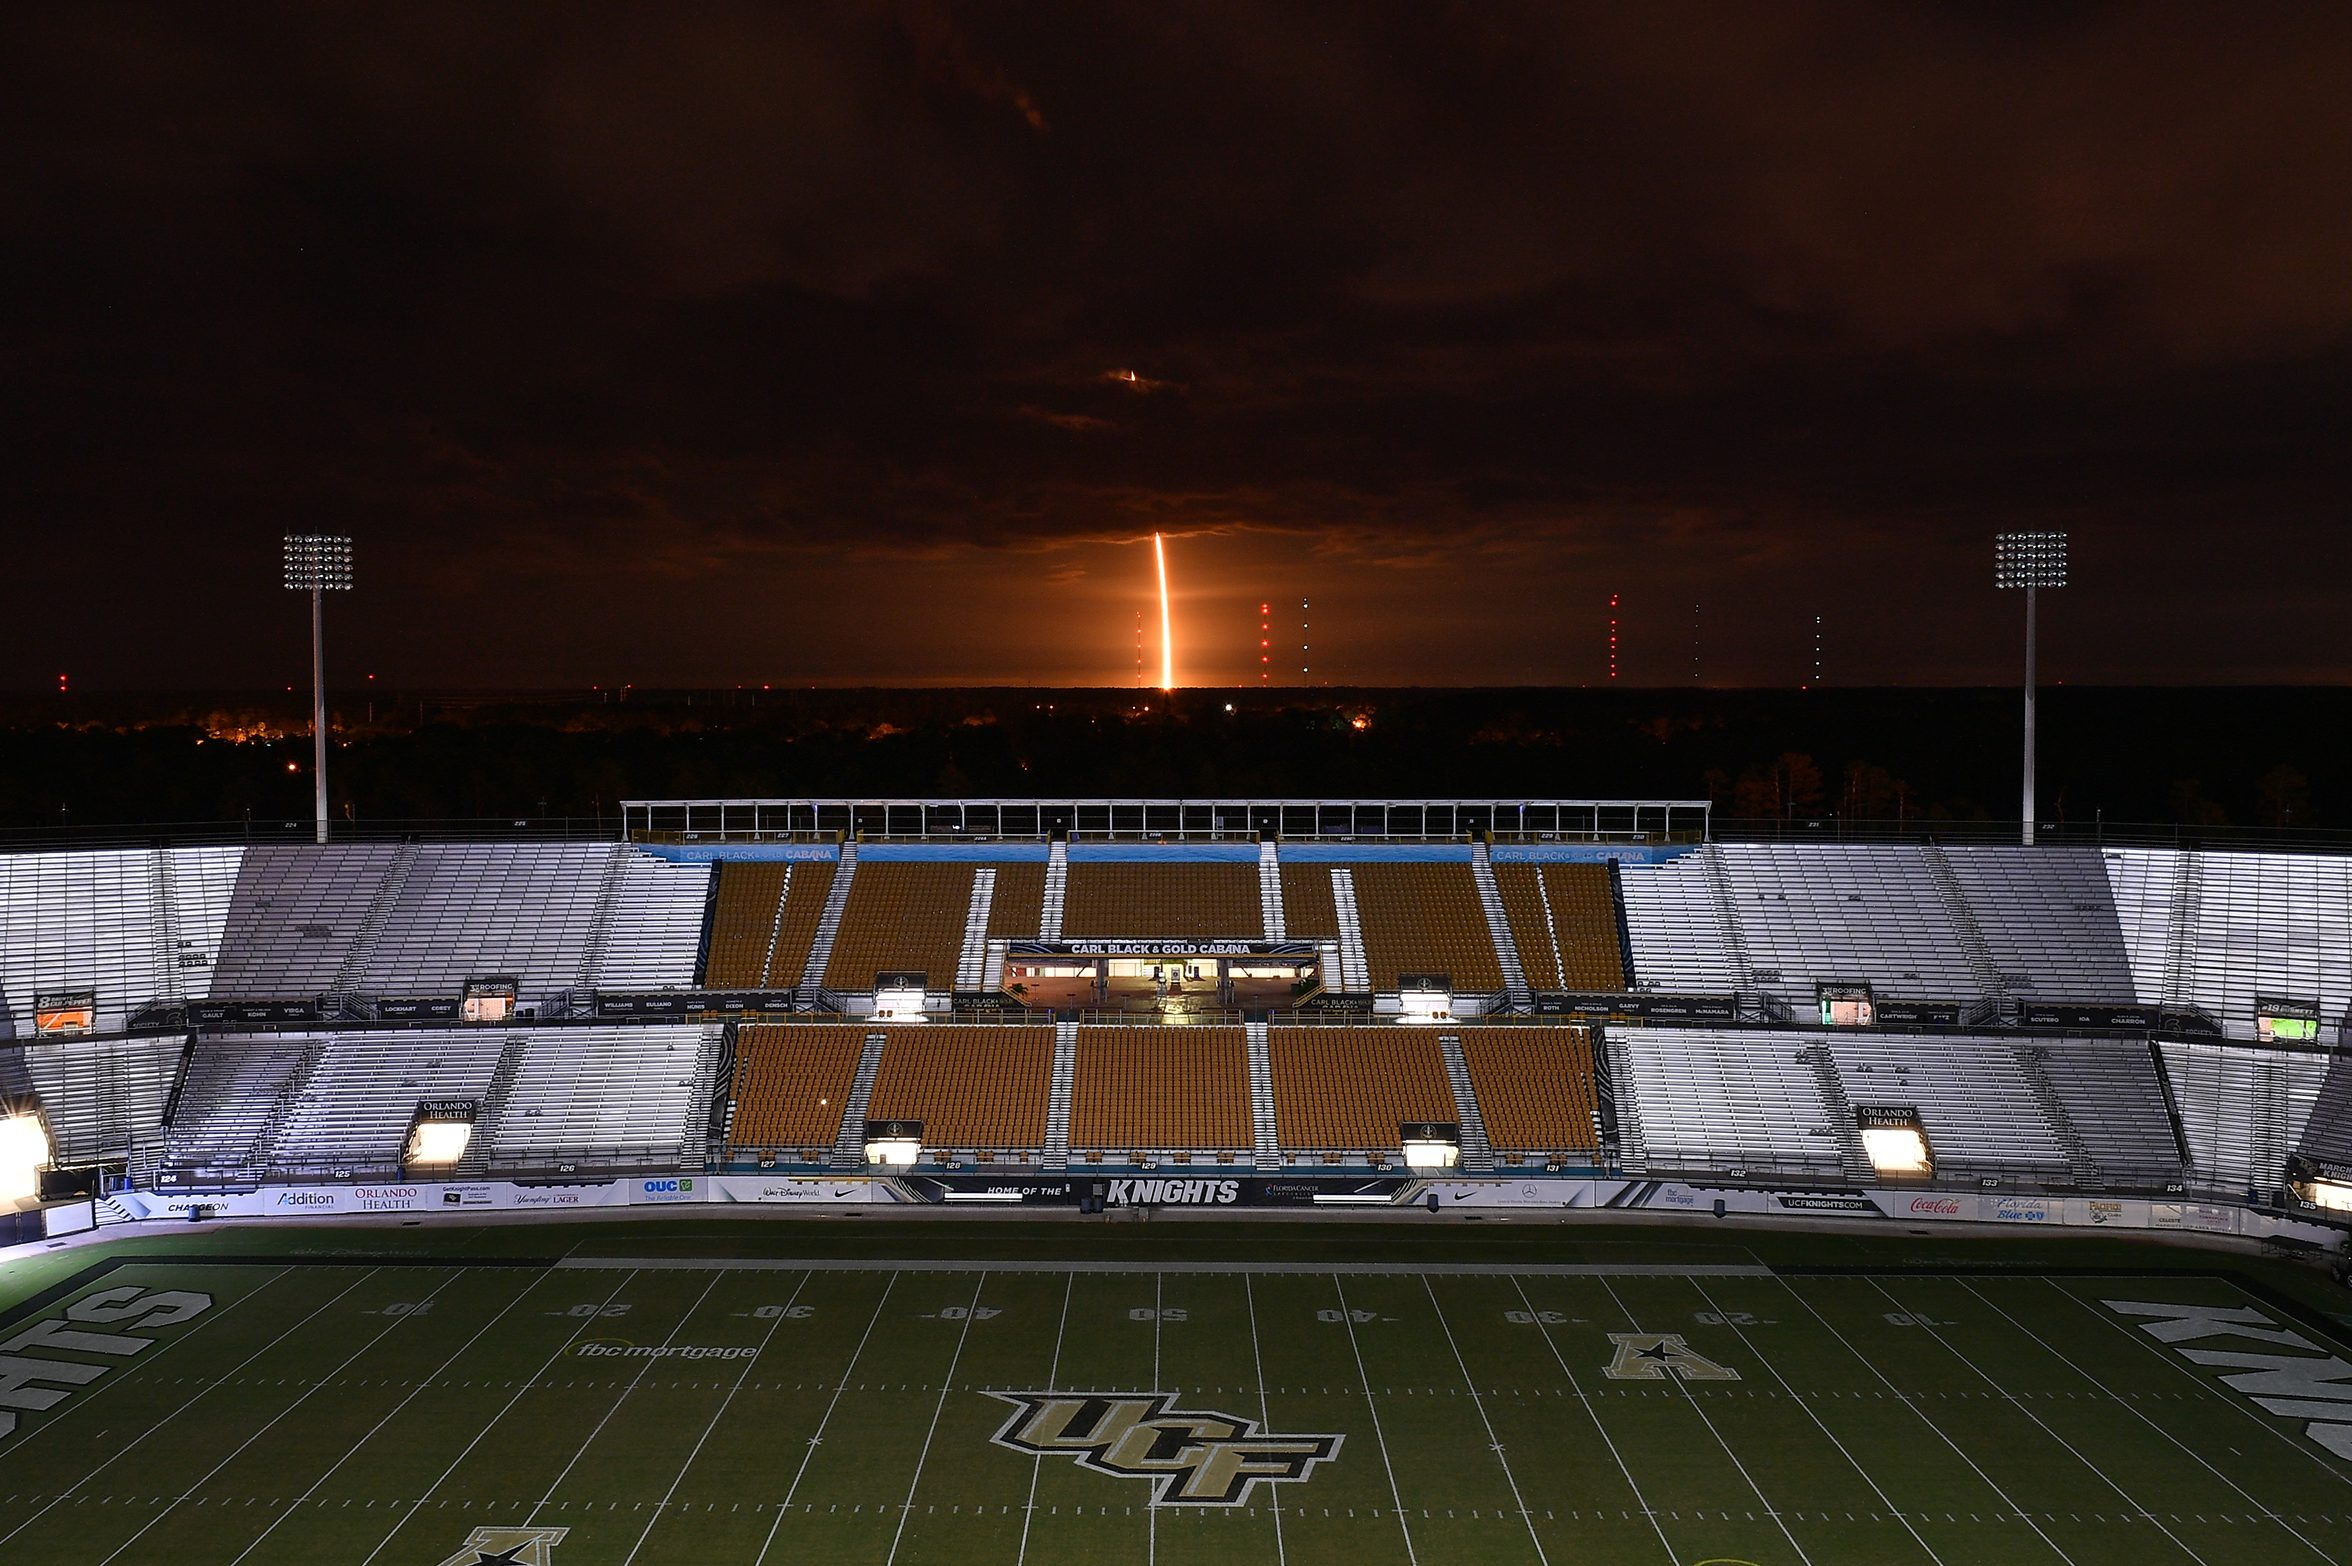 A view of the SpaceX Falcon 9 rocket launch from UCF Knight's Spectrum Stadium on Nov. 15 in Orlando, Fla.